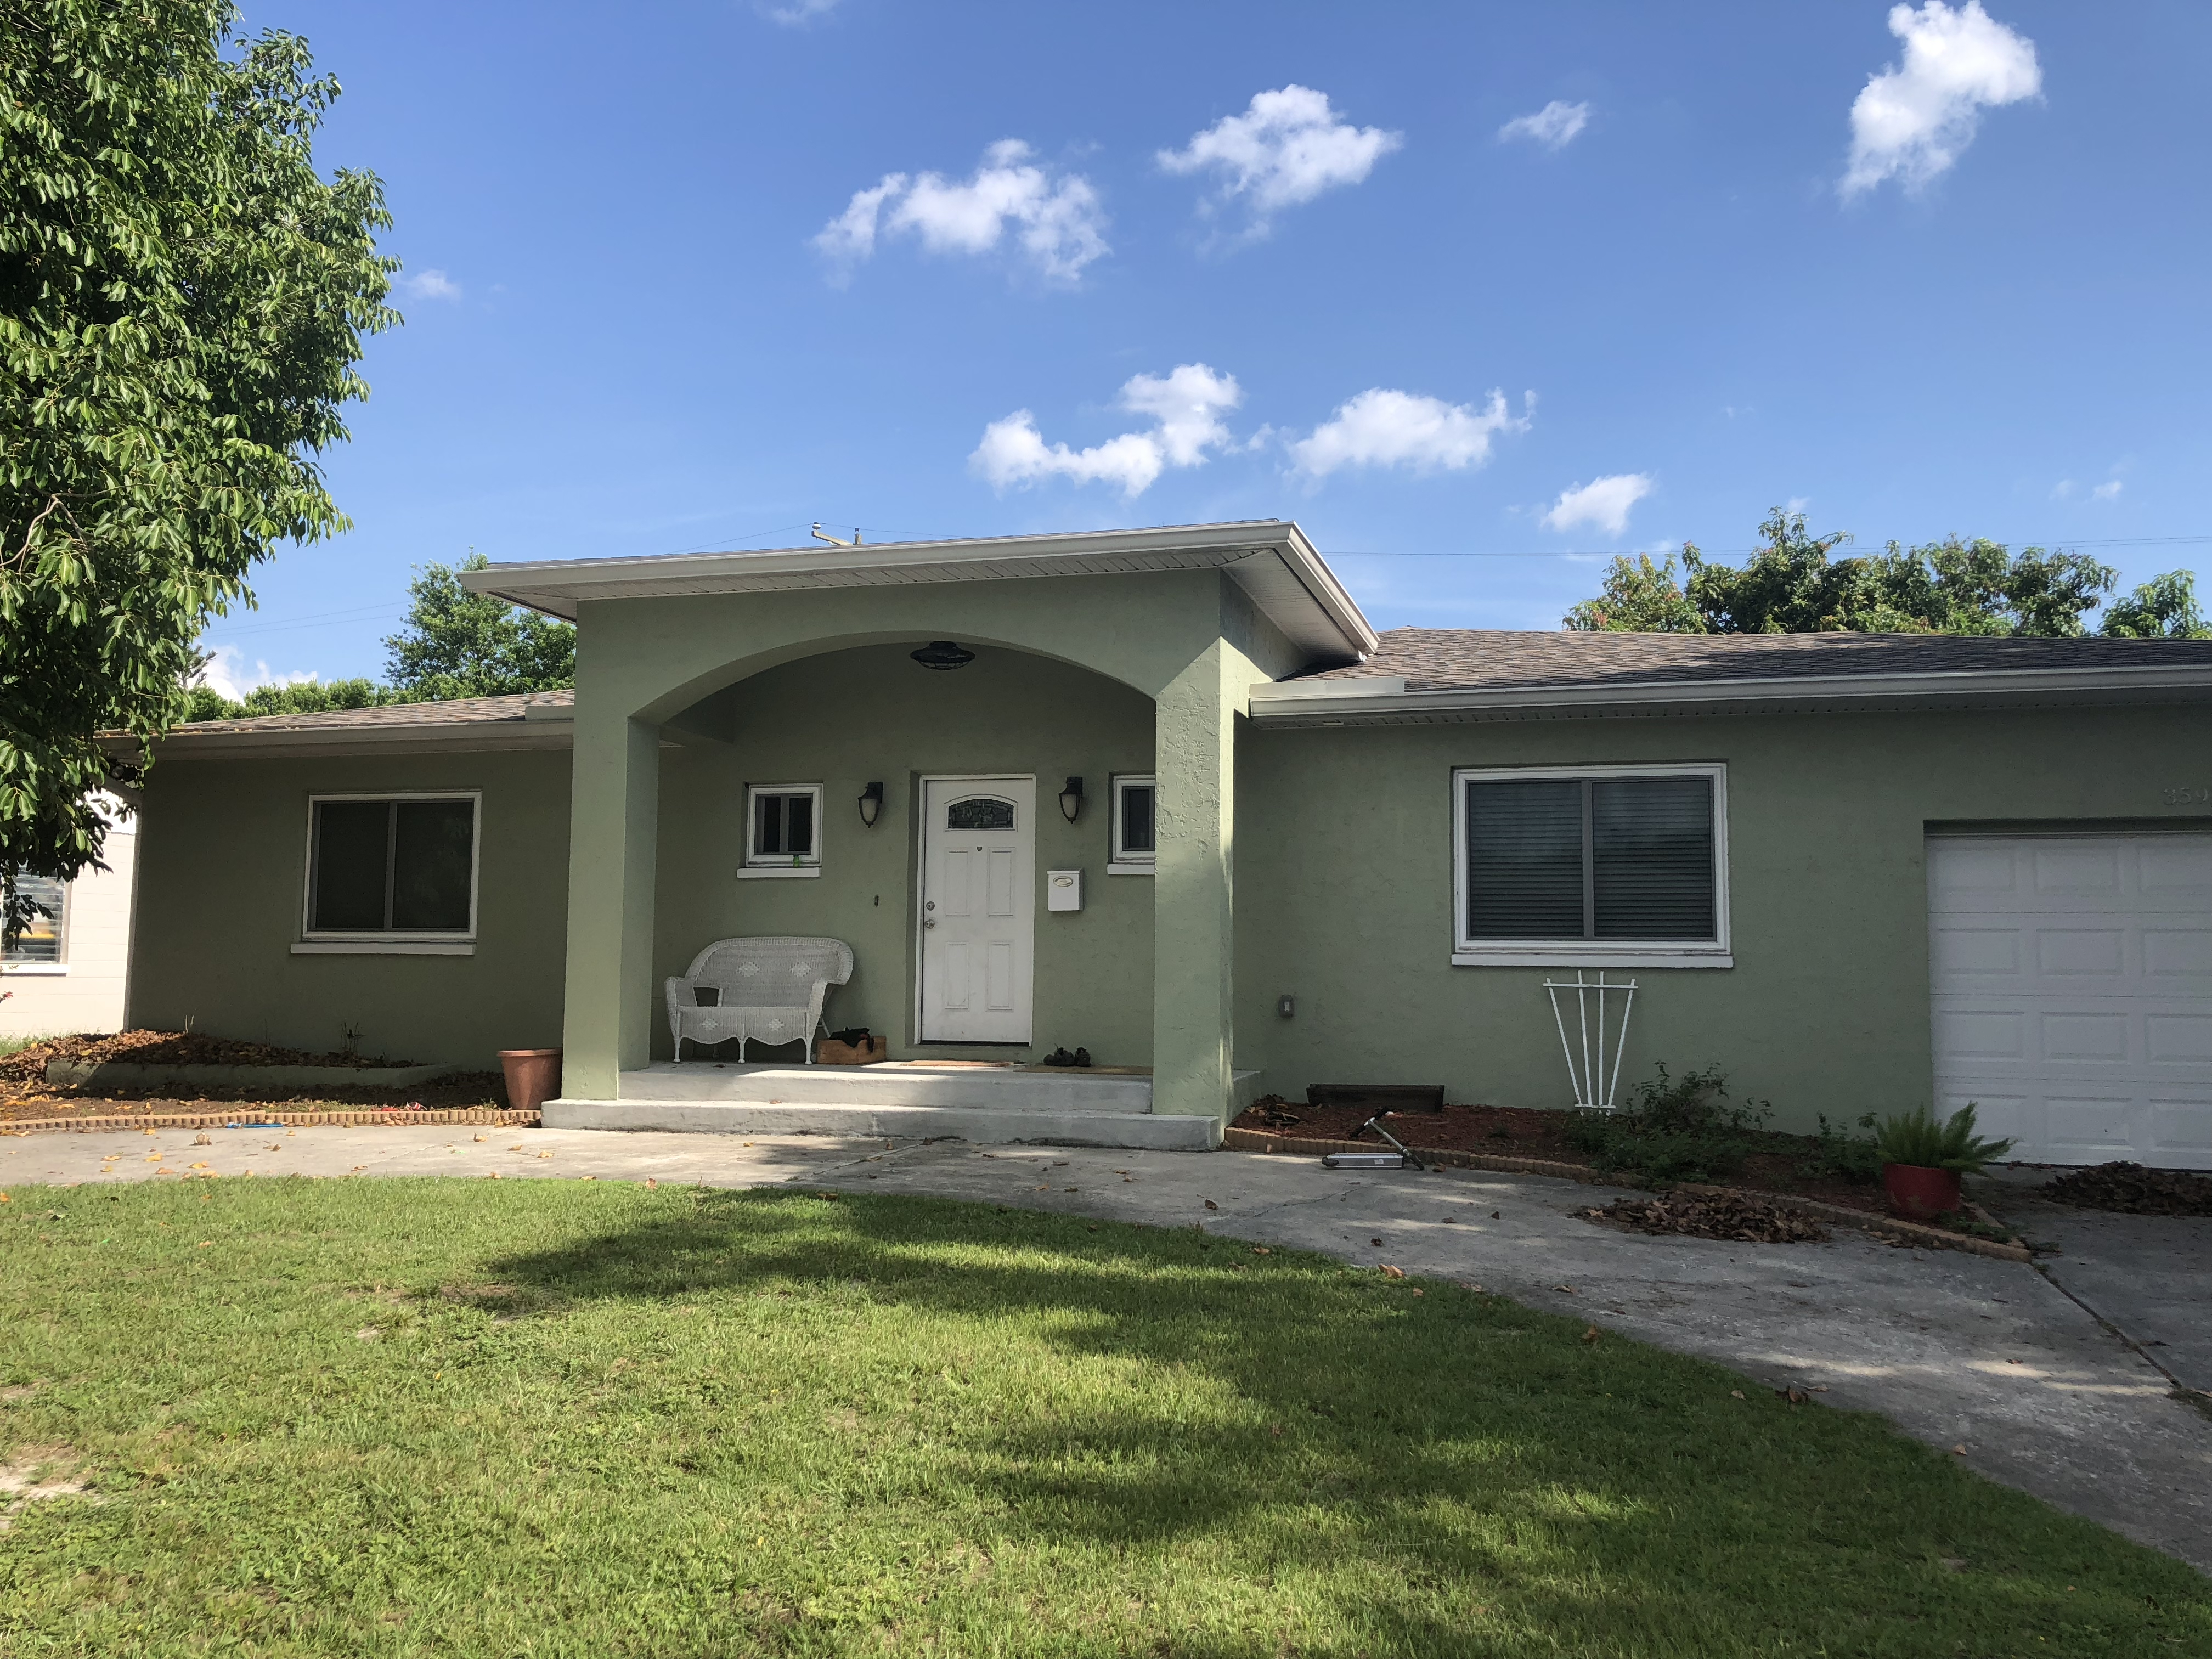 Photo of 3592 28th Ave N, St. Petersburg, FL, 33713